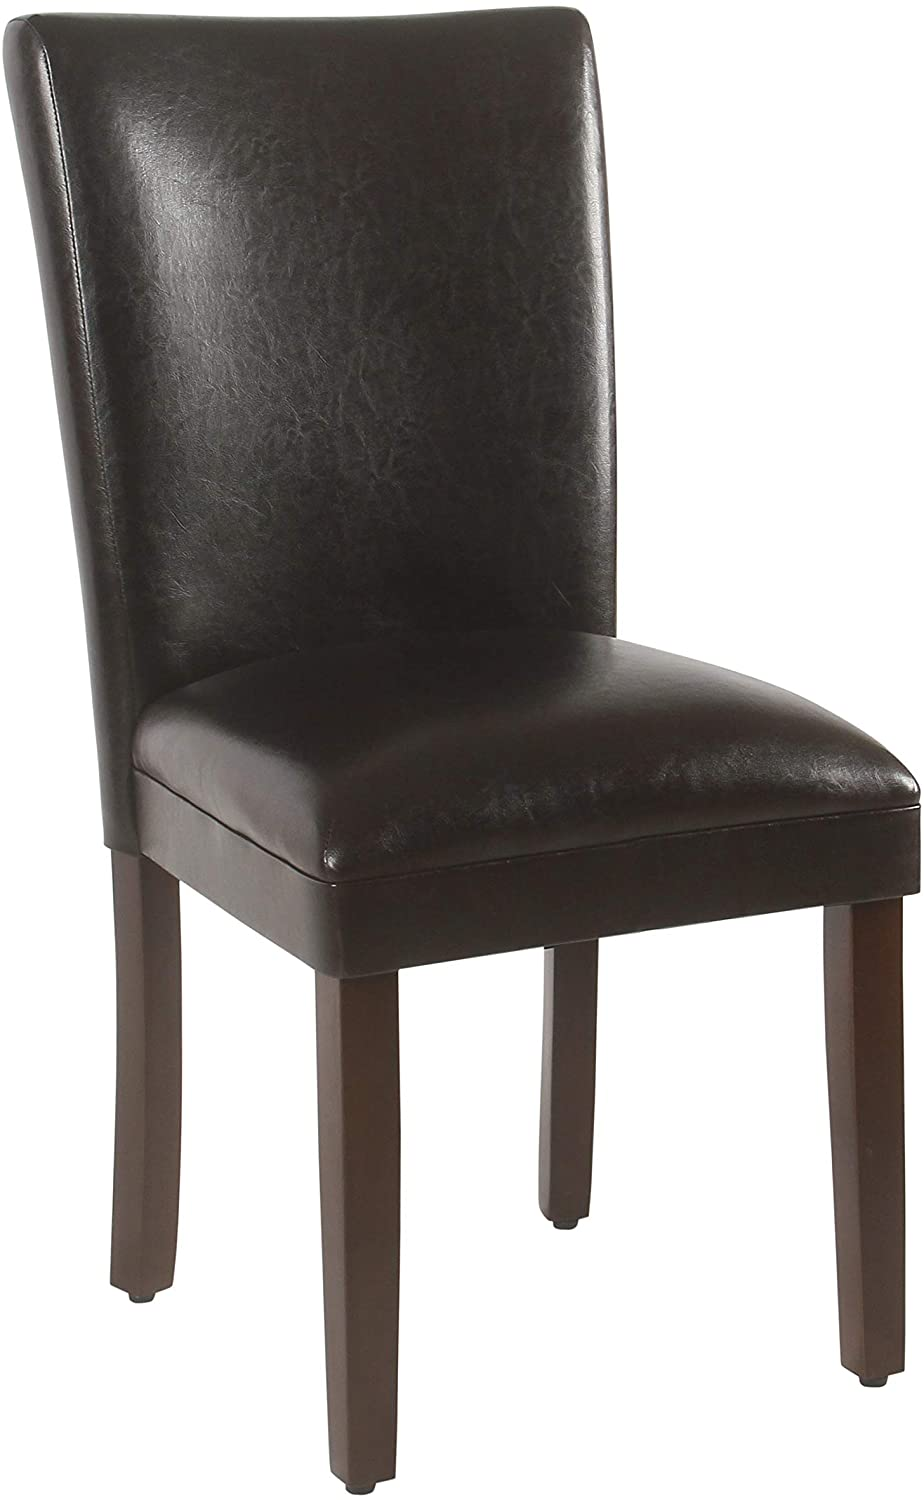 HomePop Parsons Upholstered Accent Dining Chair, Set of 2, Dark Brown Faux Leather - Chairs